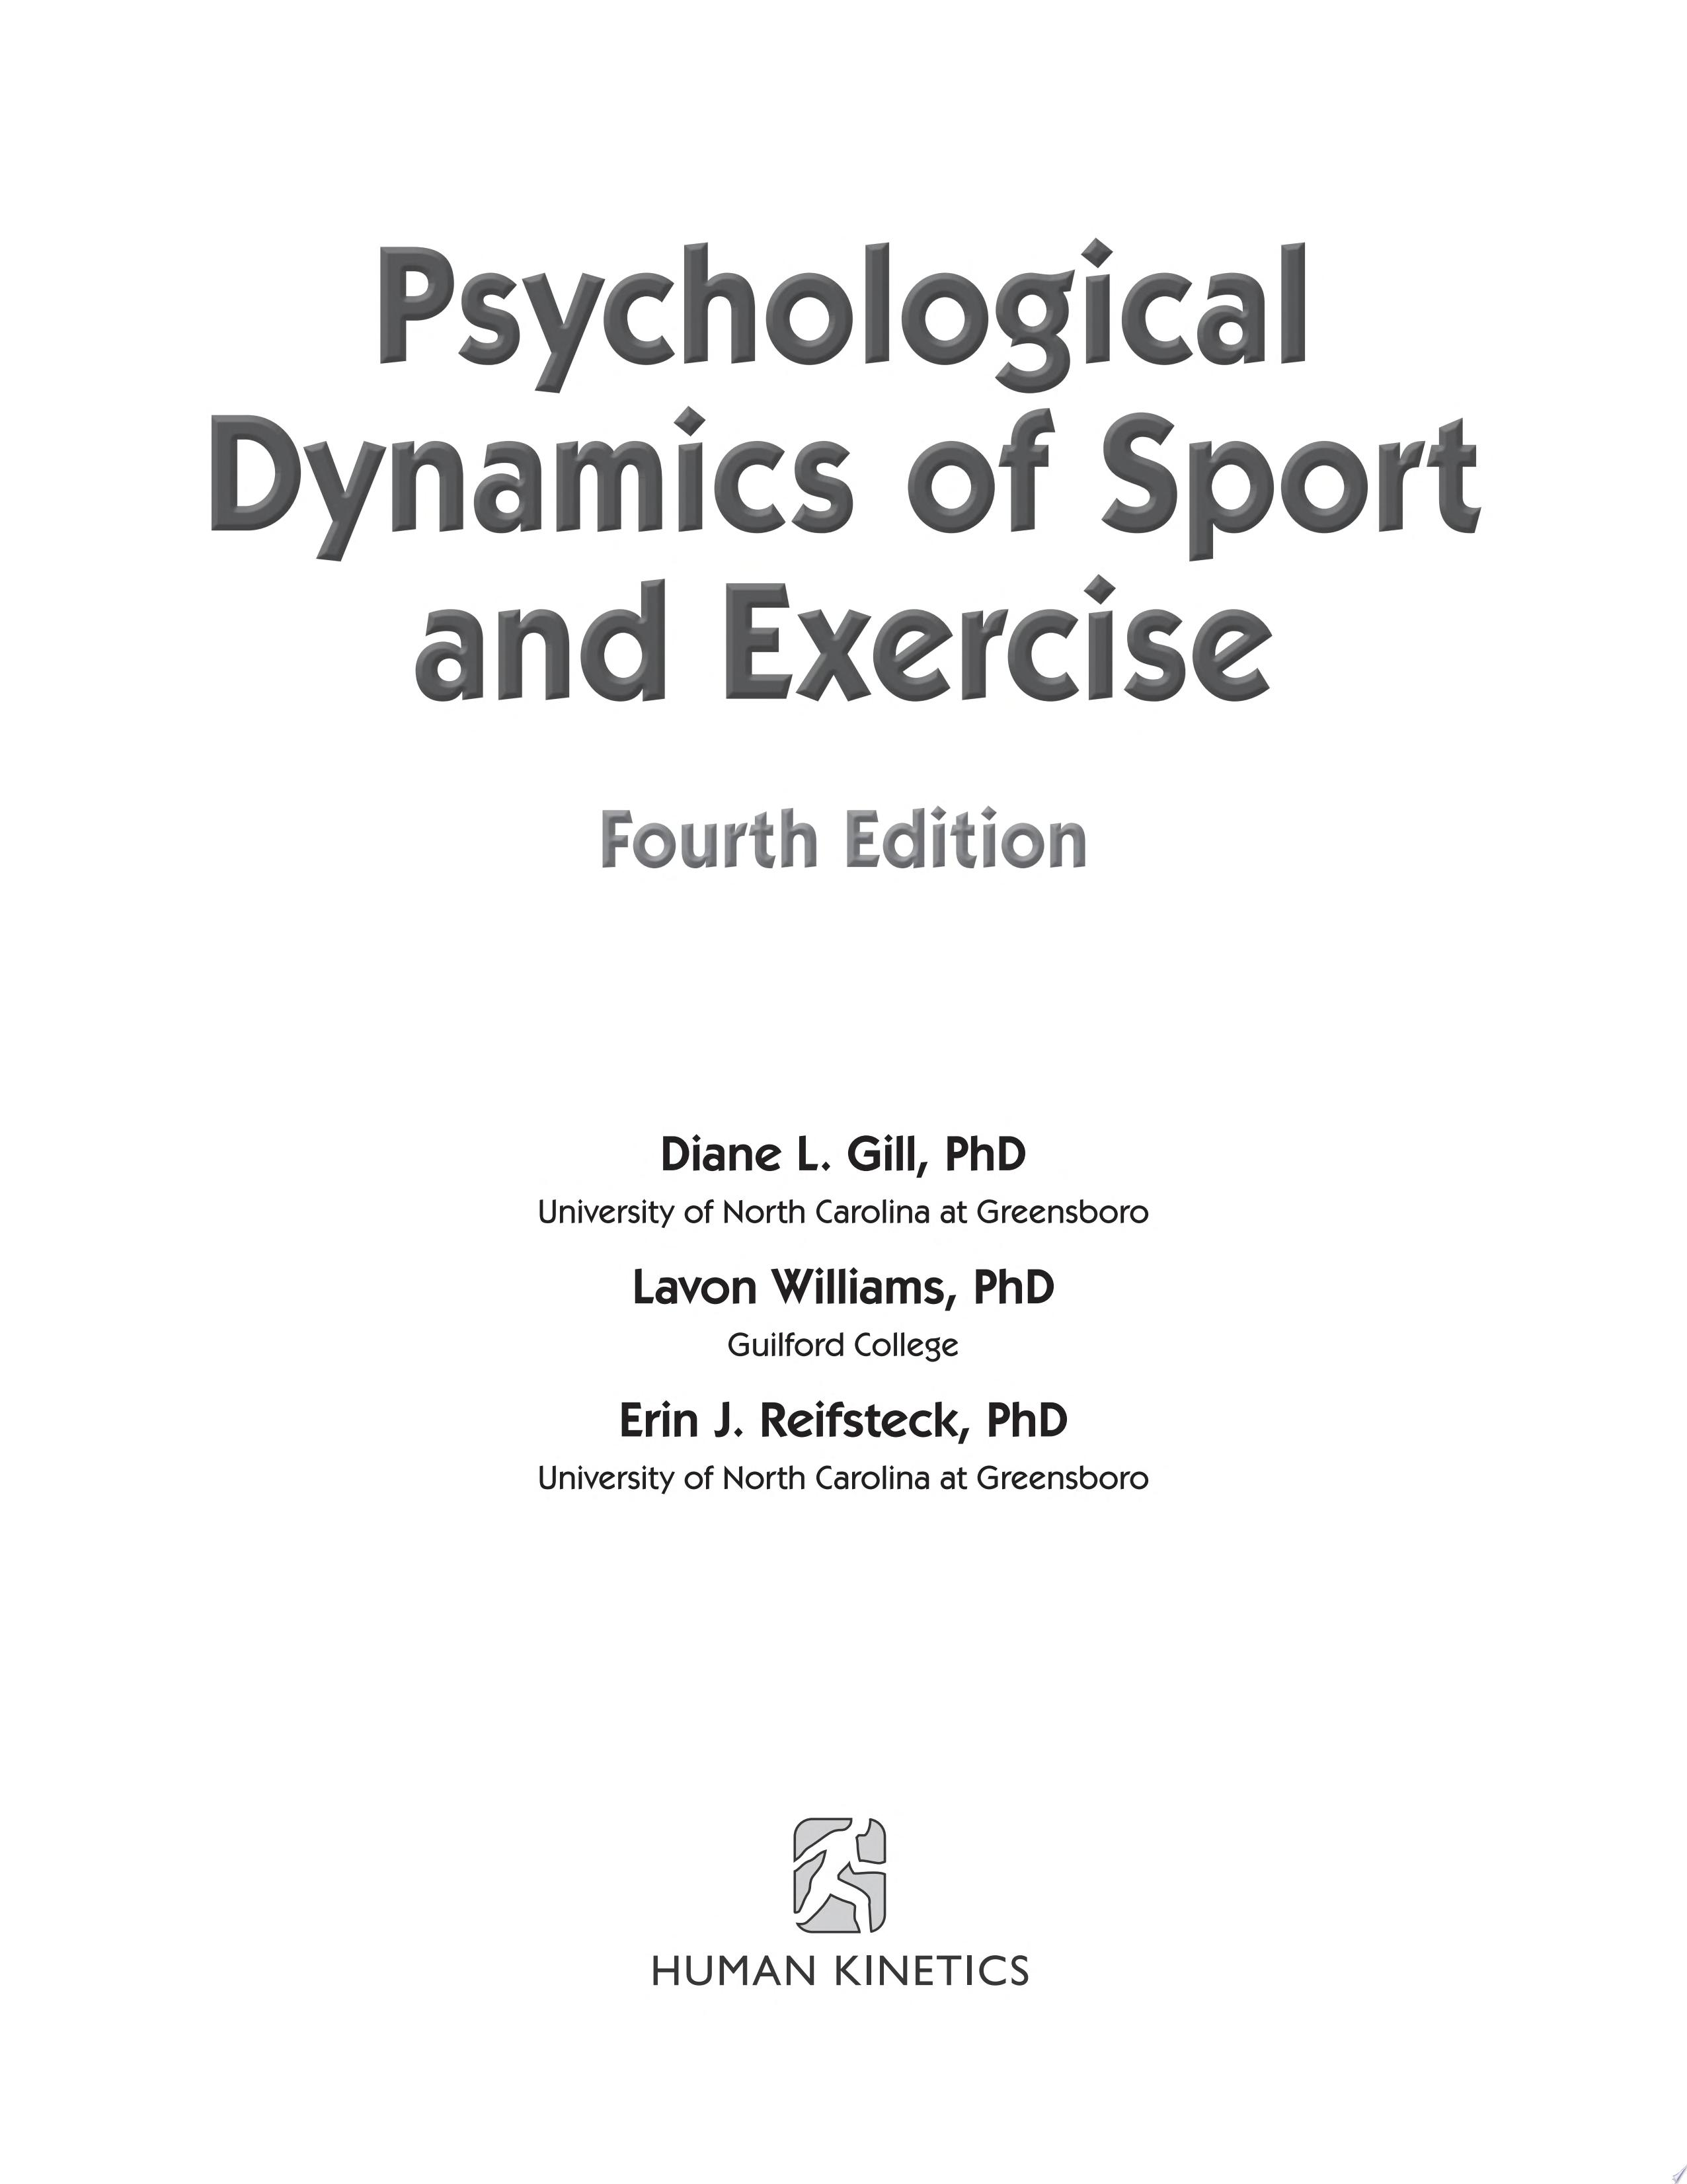 Psychological Dynamics of Sport and Exercise 4th Edition